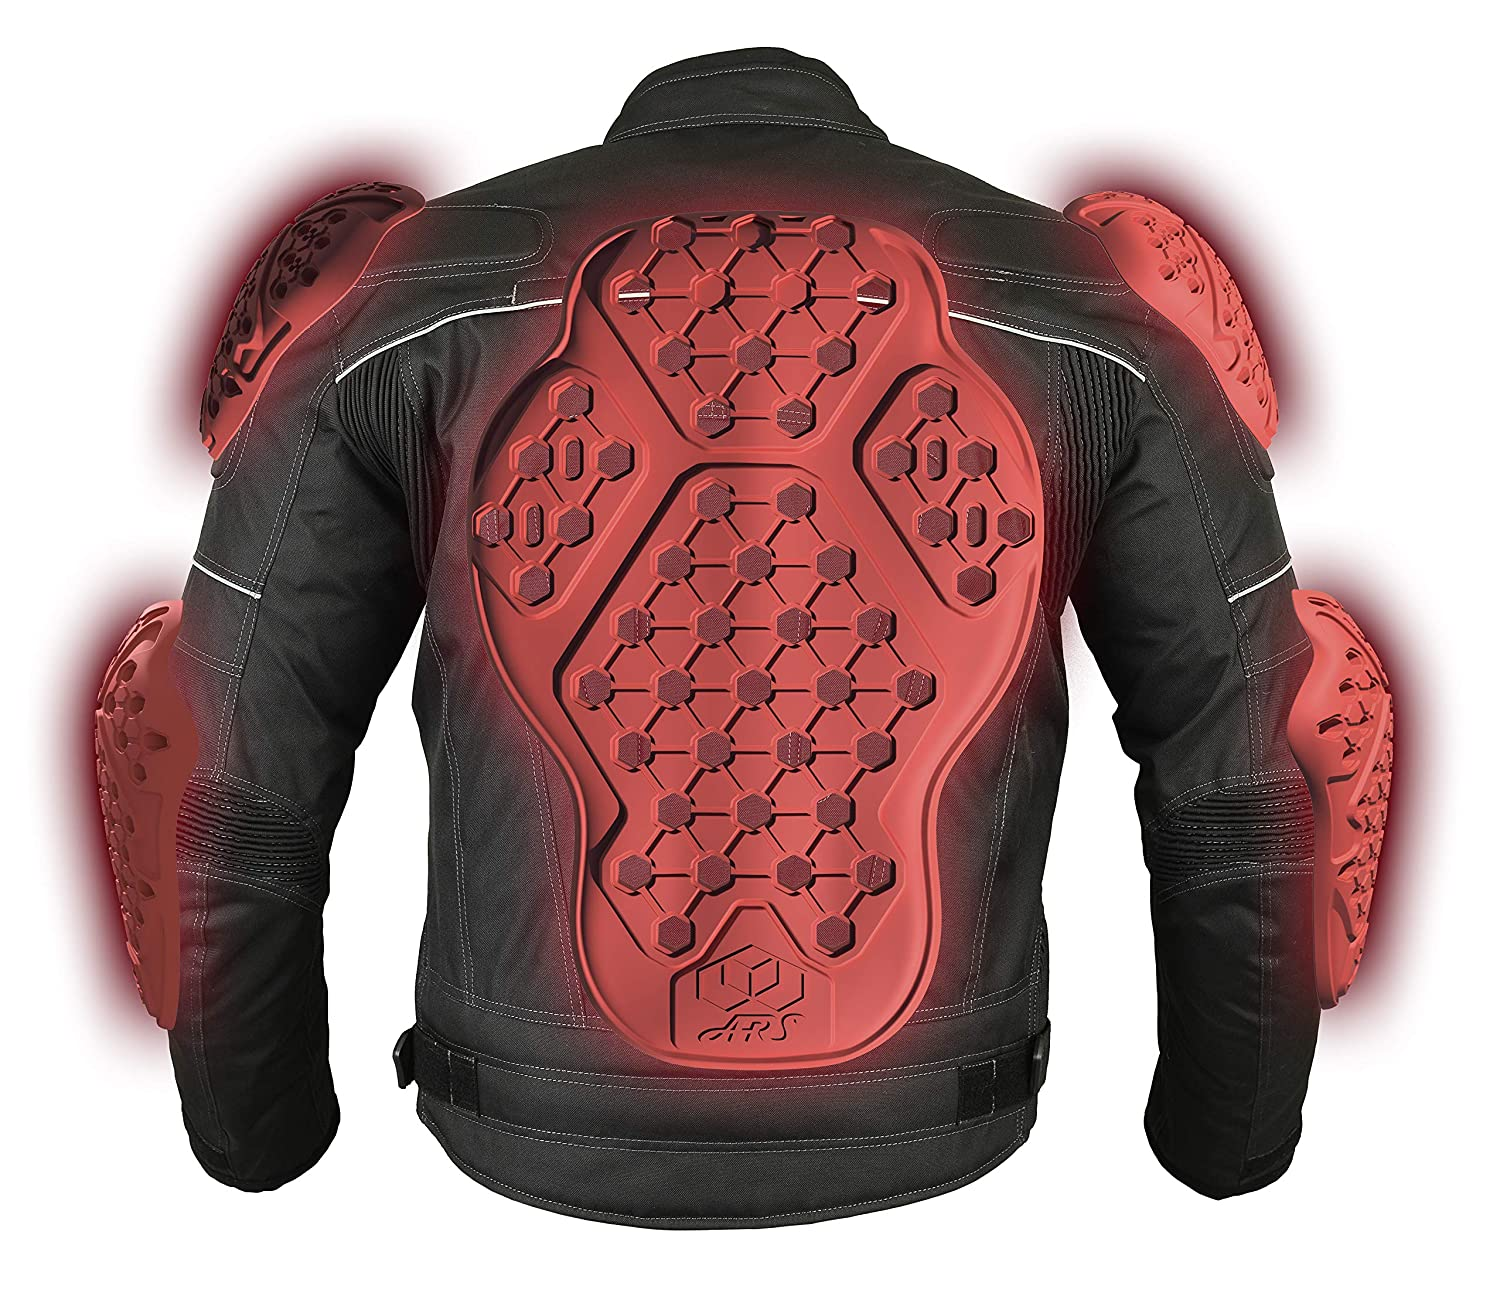 Set of 2 ,Red//One Size NSTAR Eblow Protector,ARS Replacement Elbow Pads AP-EVO-E,Street Motorcycle Riding Body Armor